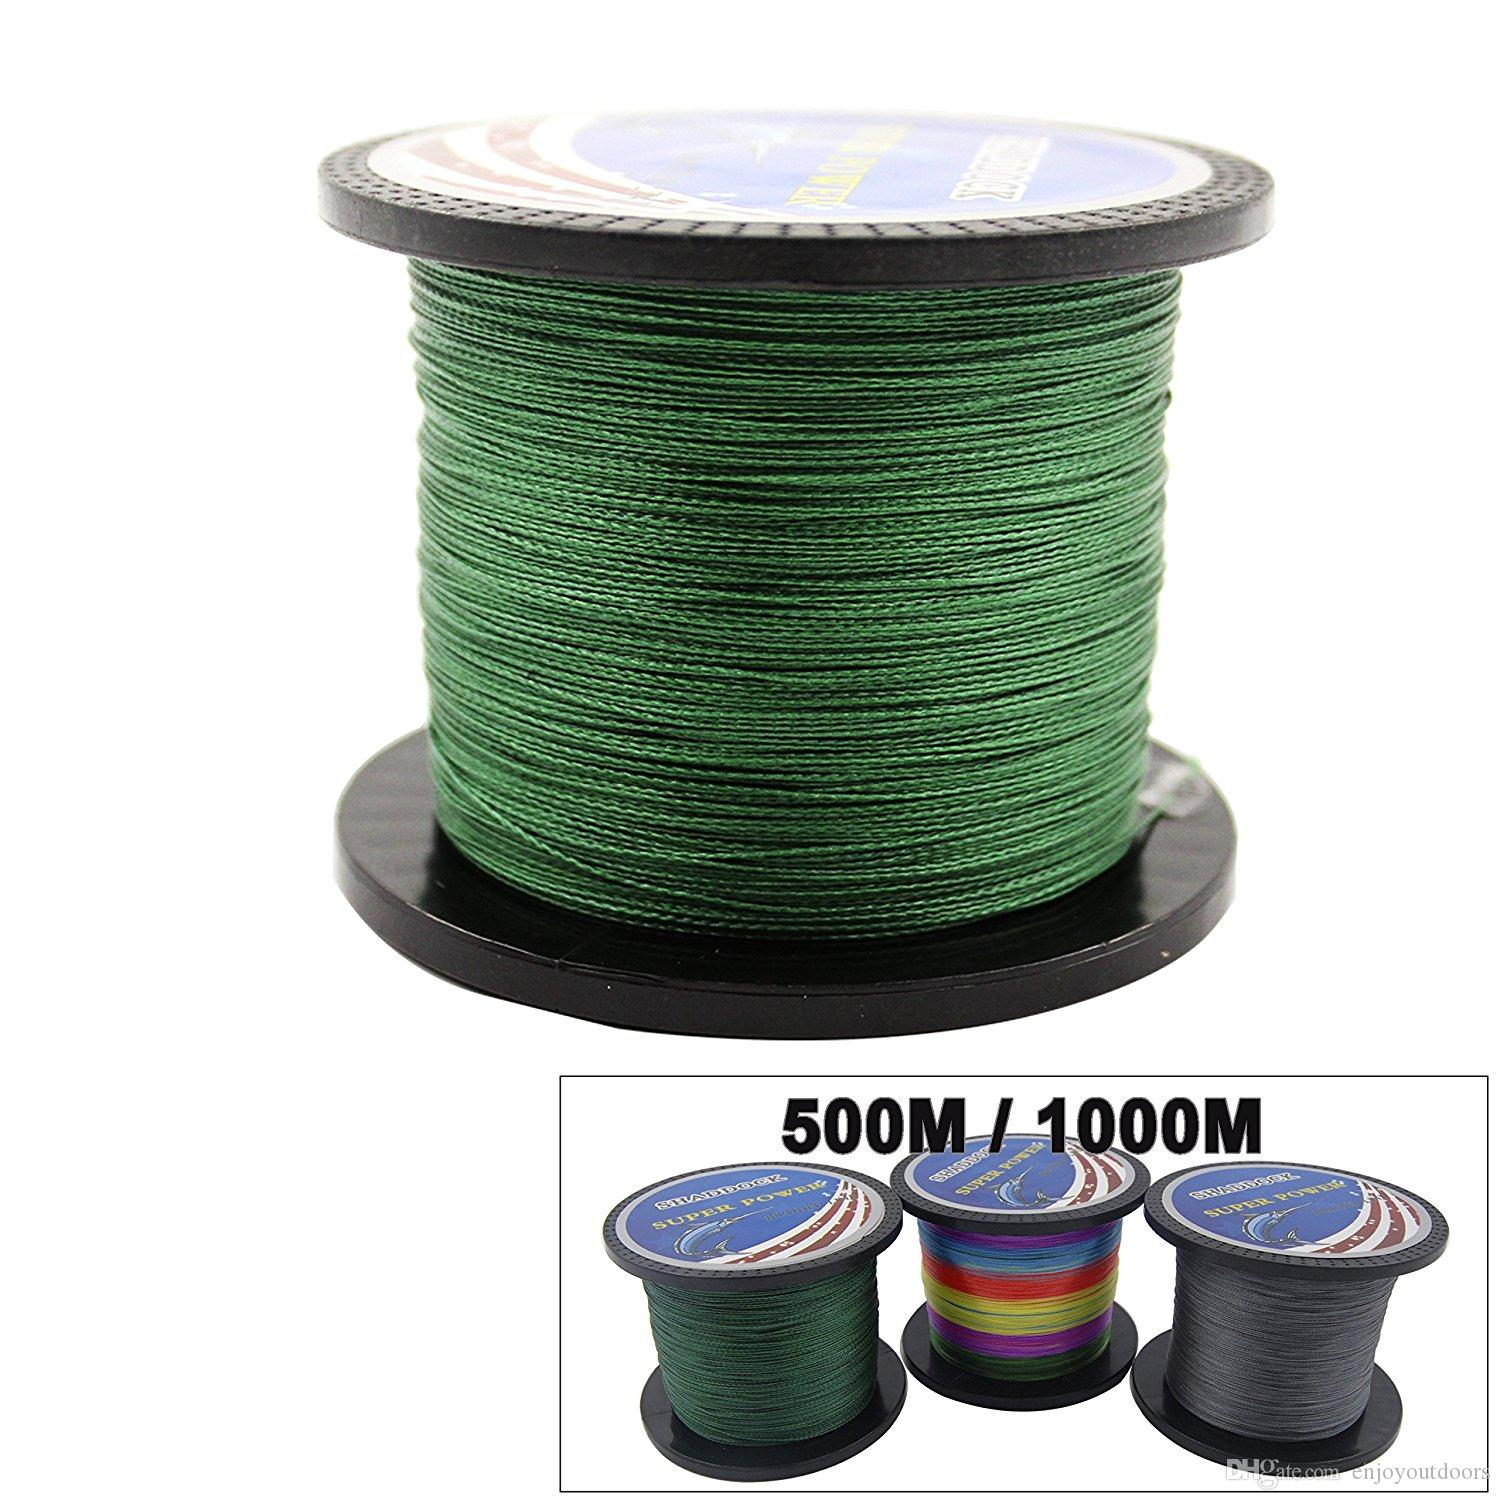 Super Strong 0.20mm 0.23mm 100% PE Braided Fishing Line 100M 300M 500M 1000M Advanced High-strength Fishing Super line with 4-Strands